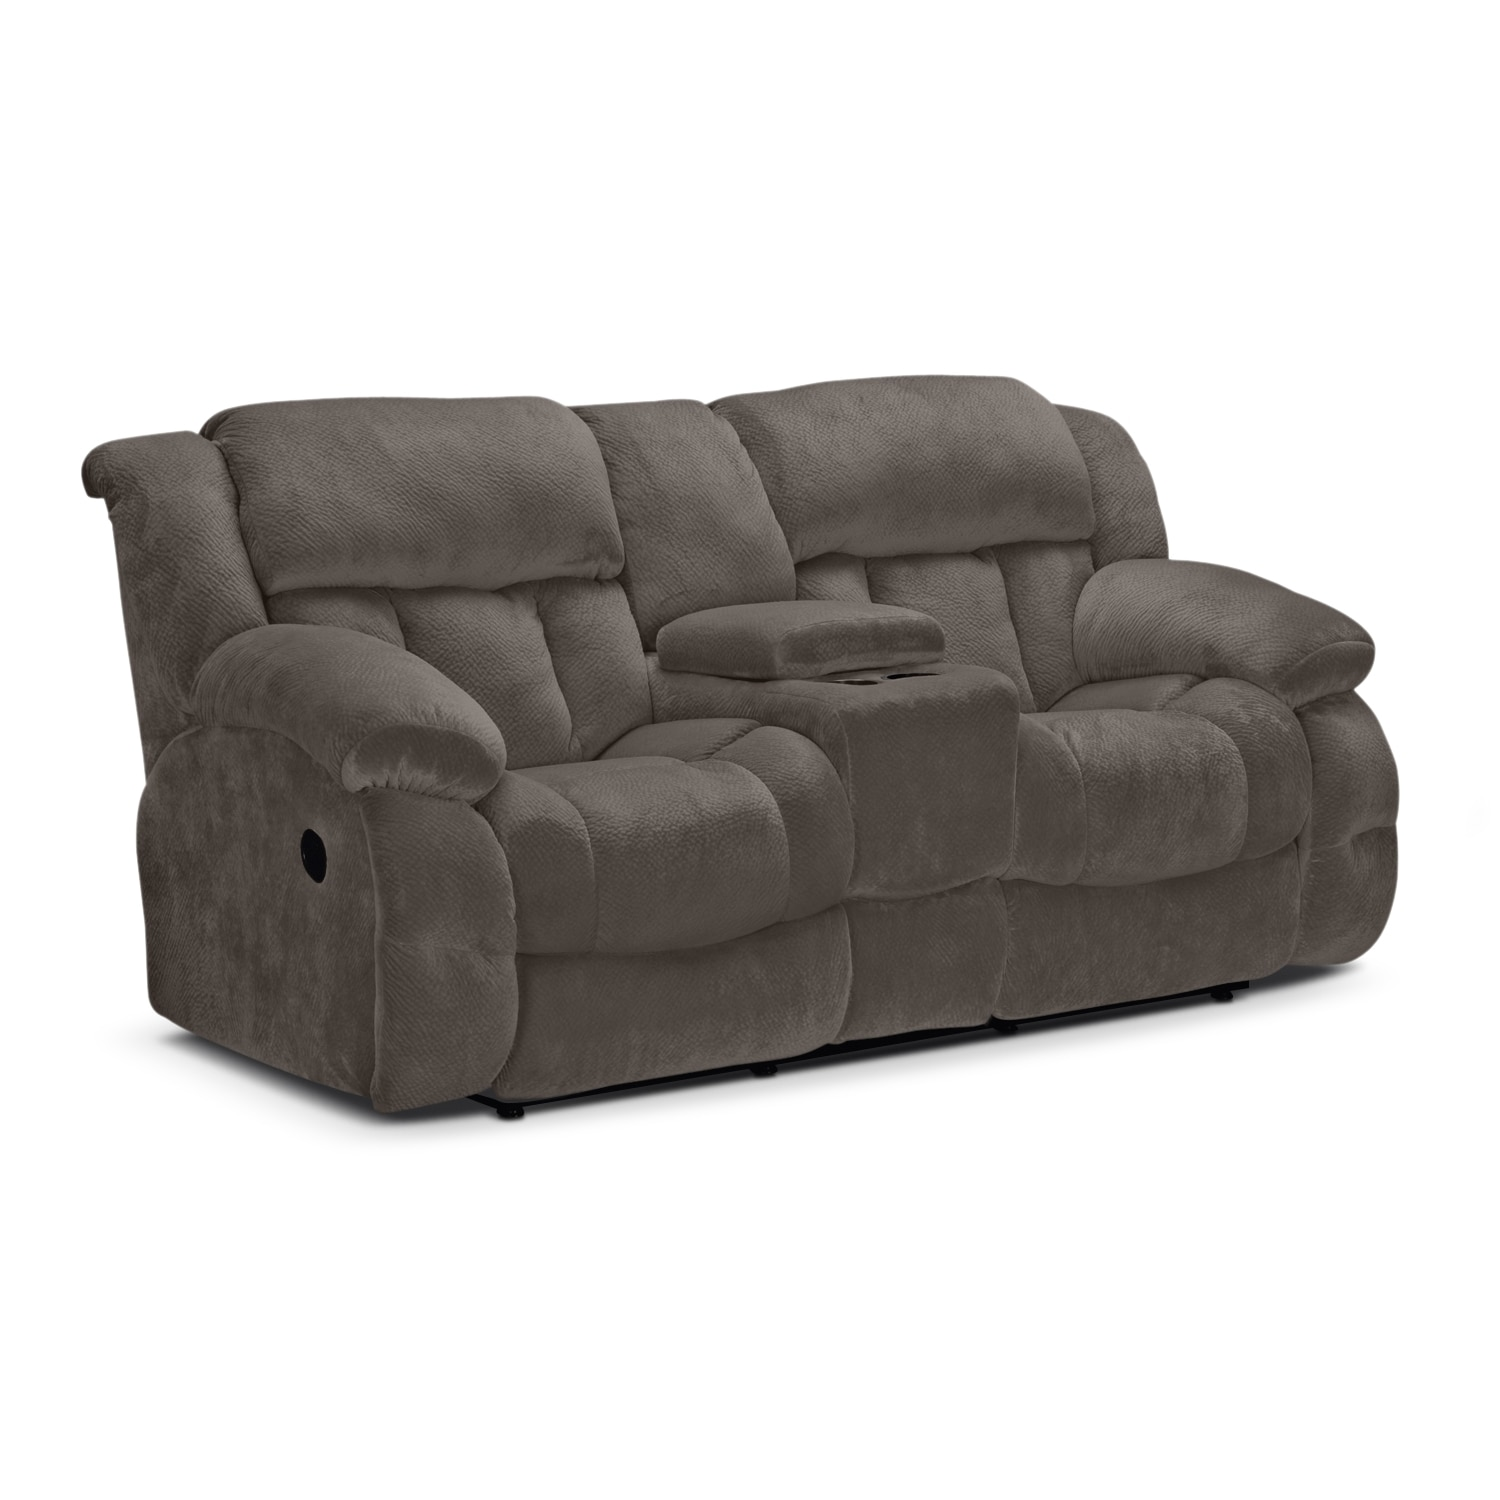 Park City Dual Reclining Loveseat - Gray